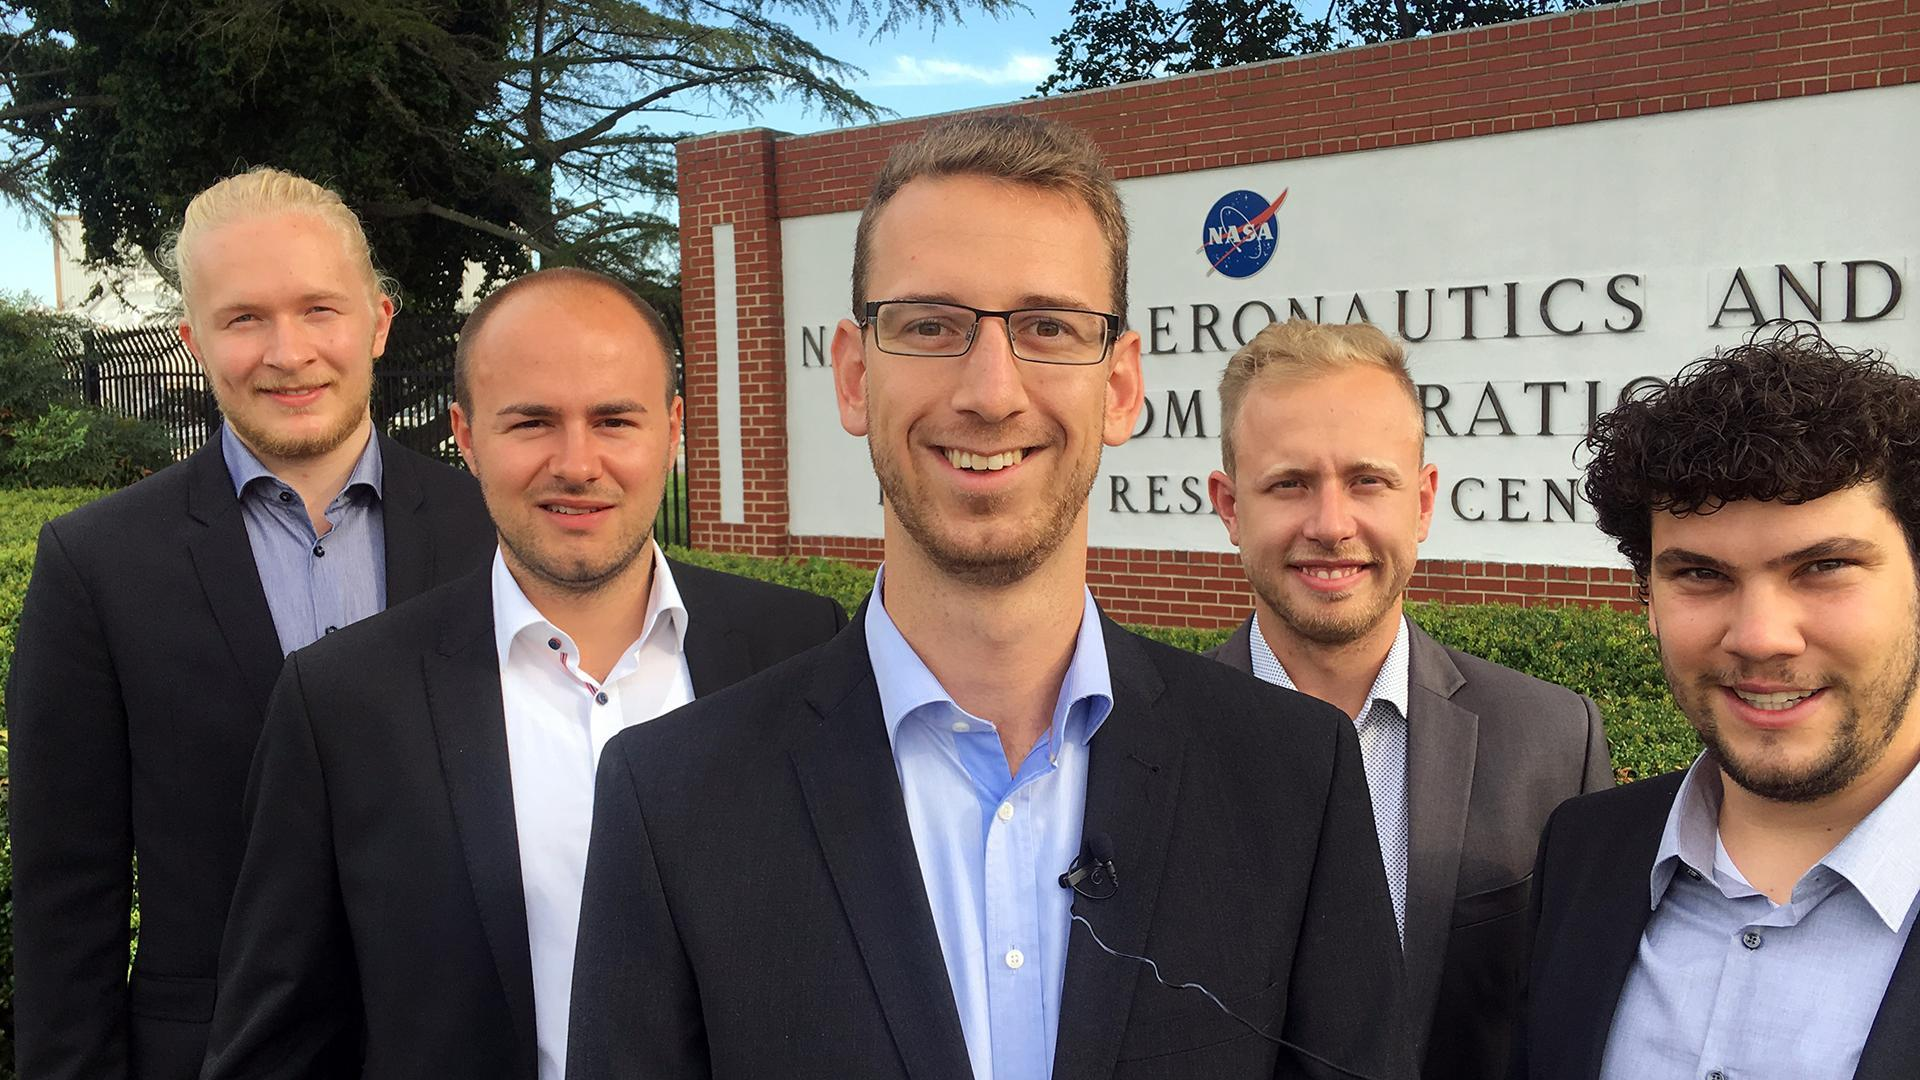 Foto Team der Uni Stuttgart am Eingang des NASA Langley Research Center